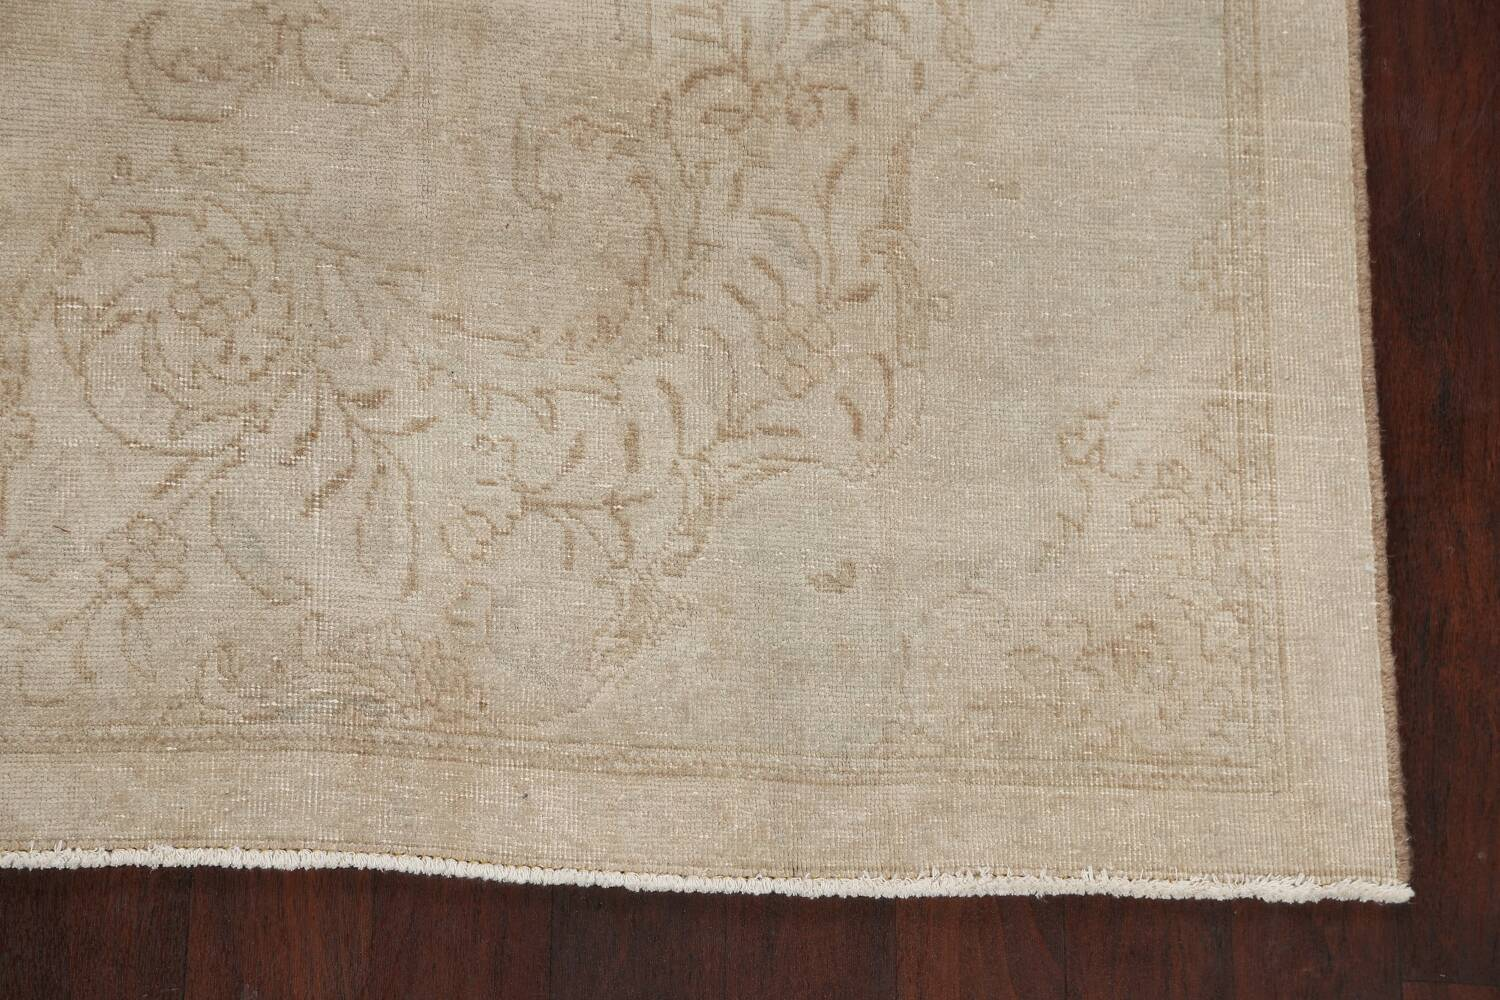 Antique Muted Floral Tabriz Persian Area Rug 7x11 image 5